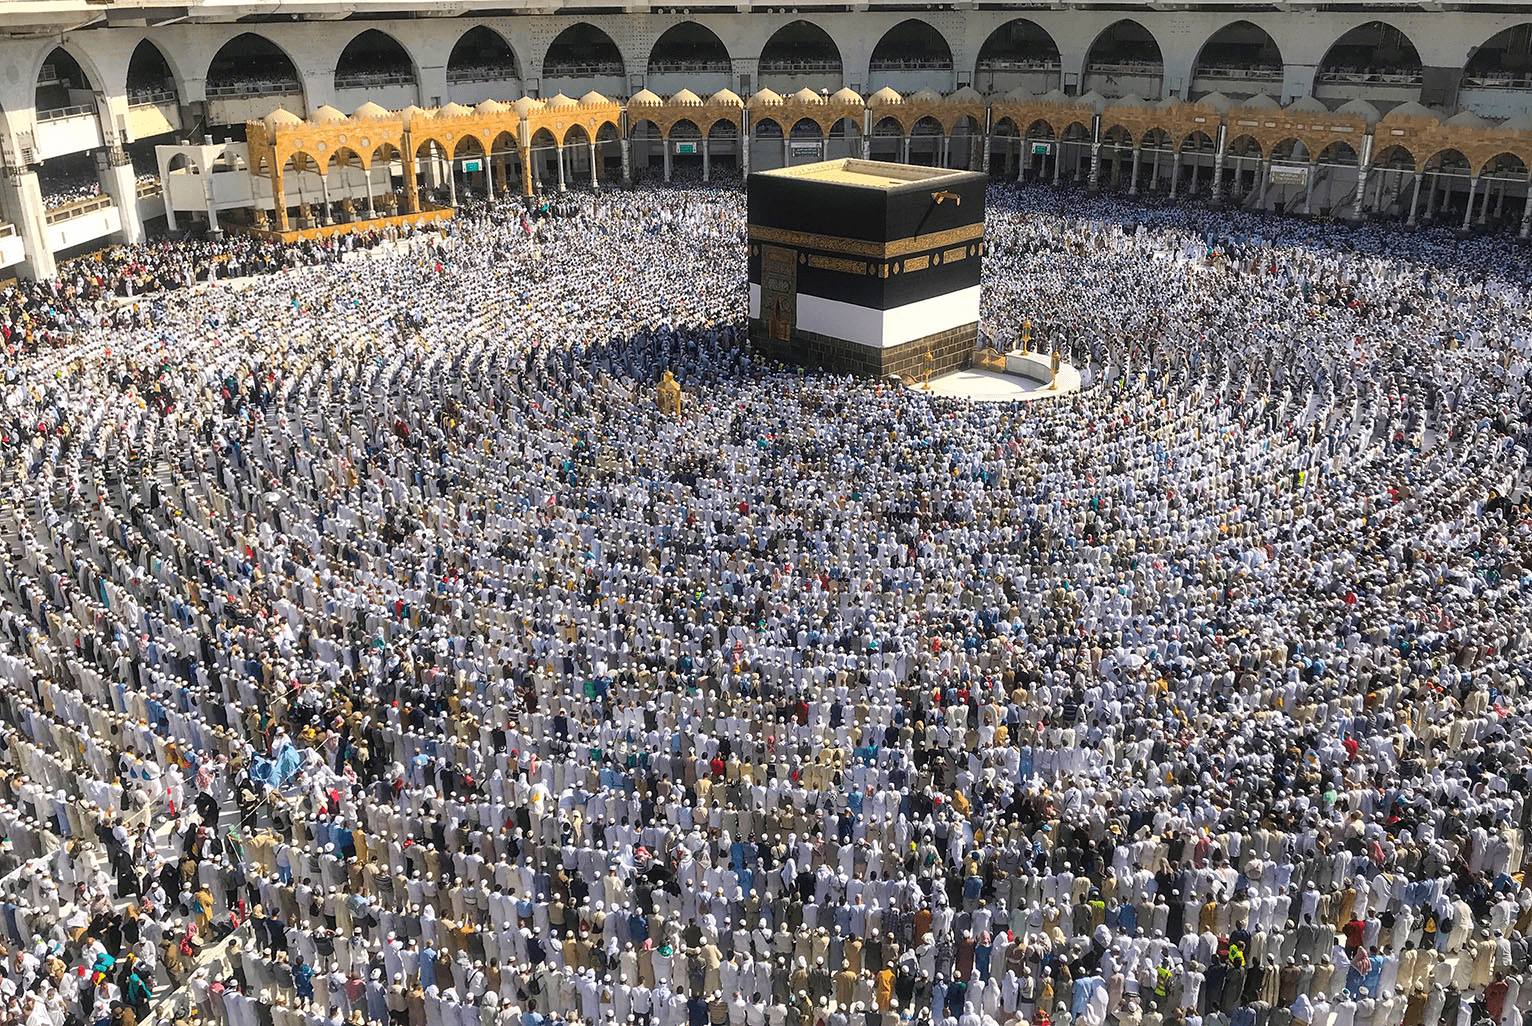 hajj pilgrimage at mecca